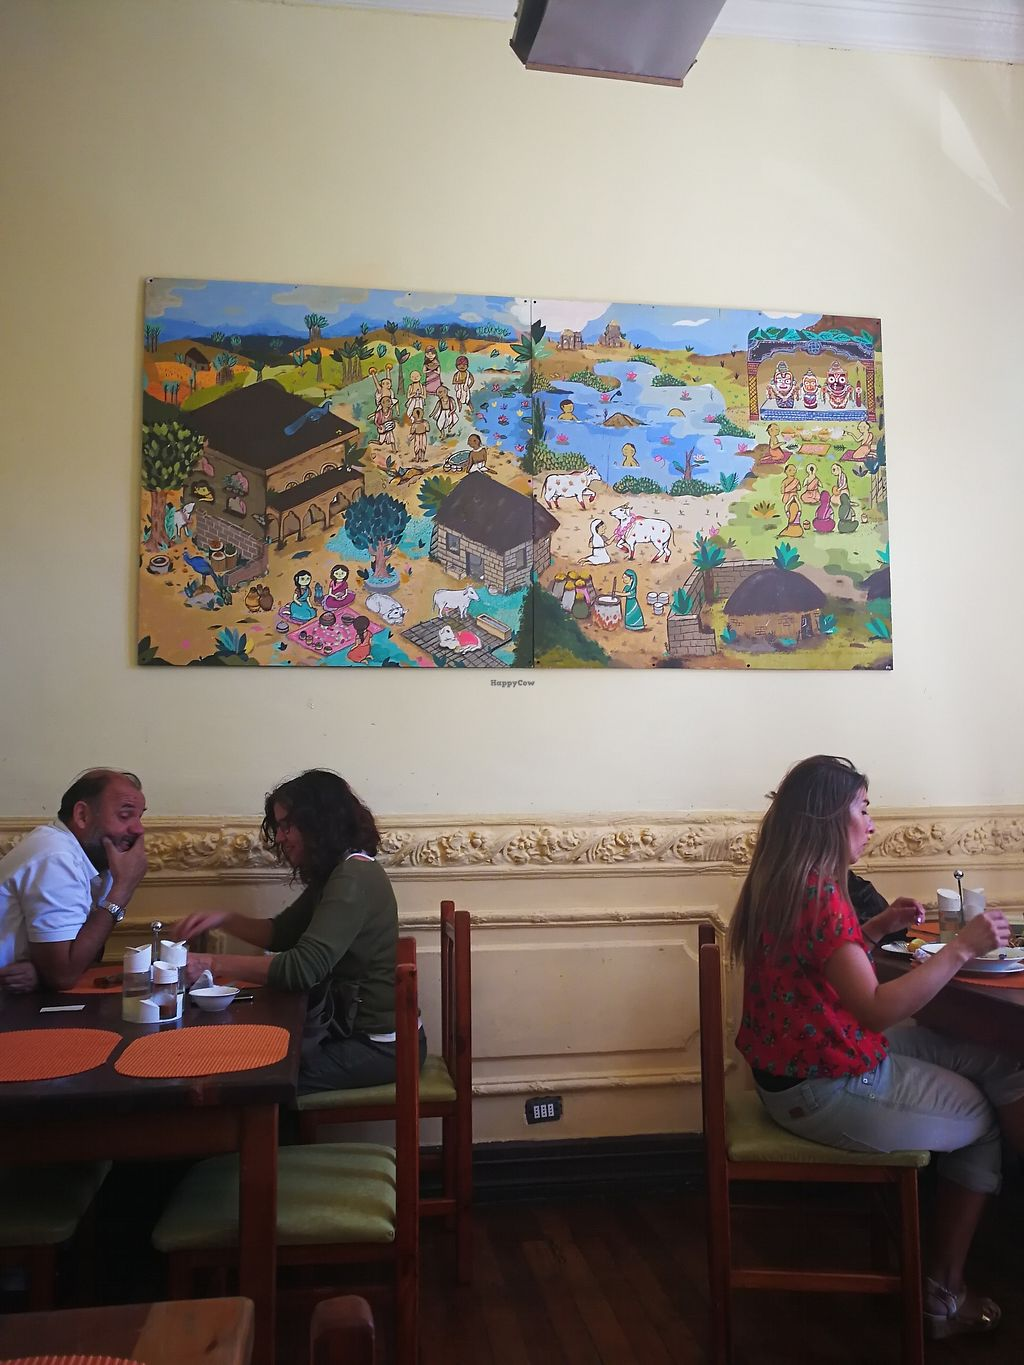 """Photo of Govinda's Restaurant  by <a href=""""/members/profile/Sharkademus"""">Sharkademus</a> <br/>There's a room with regular chairs and tables available and one where you can sit at tables on the floor.  <br/> January 27, 2018  - <a href='/contact/abuse/image/11366/351429'>Report</a>"""